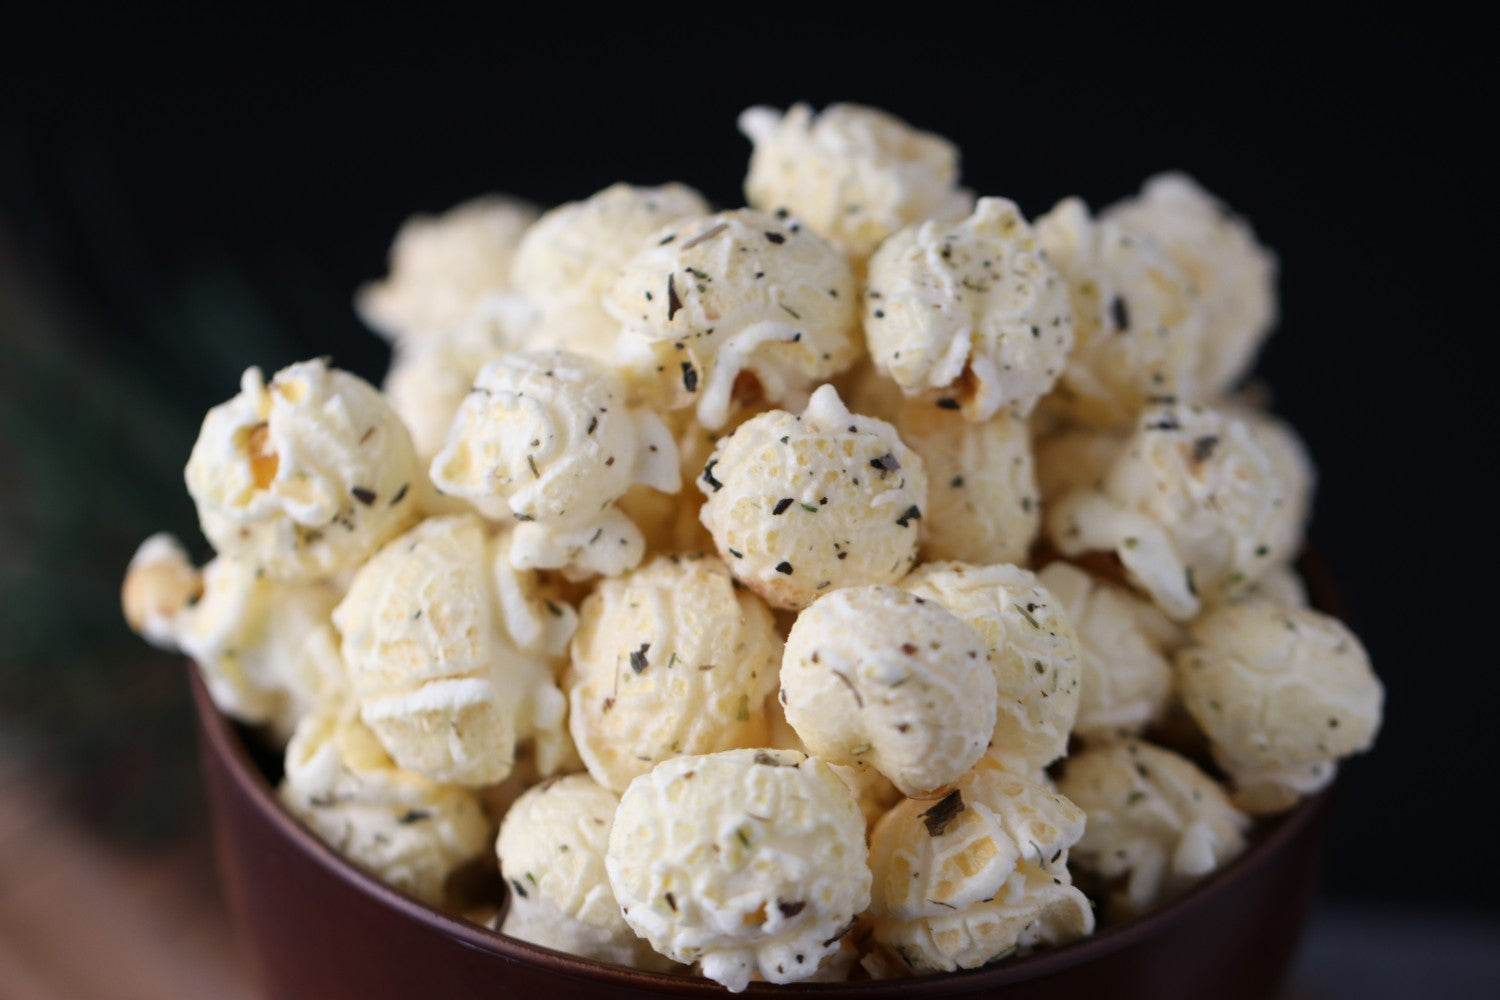 Parmesan and Herbs Popcorn